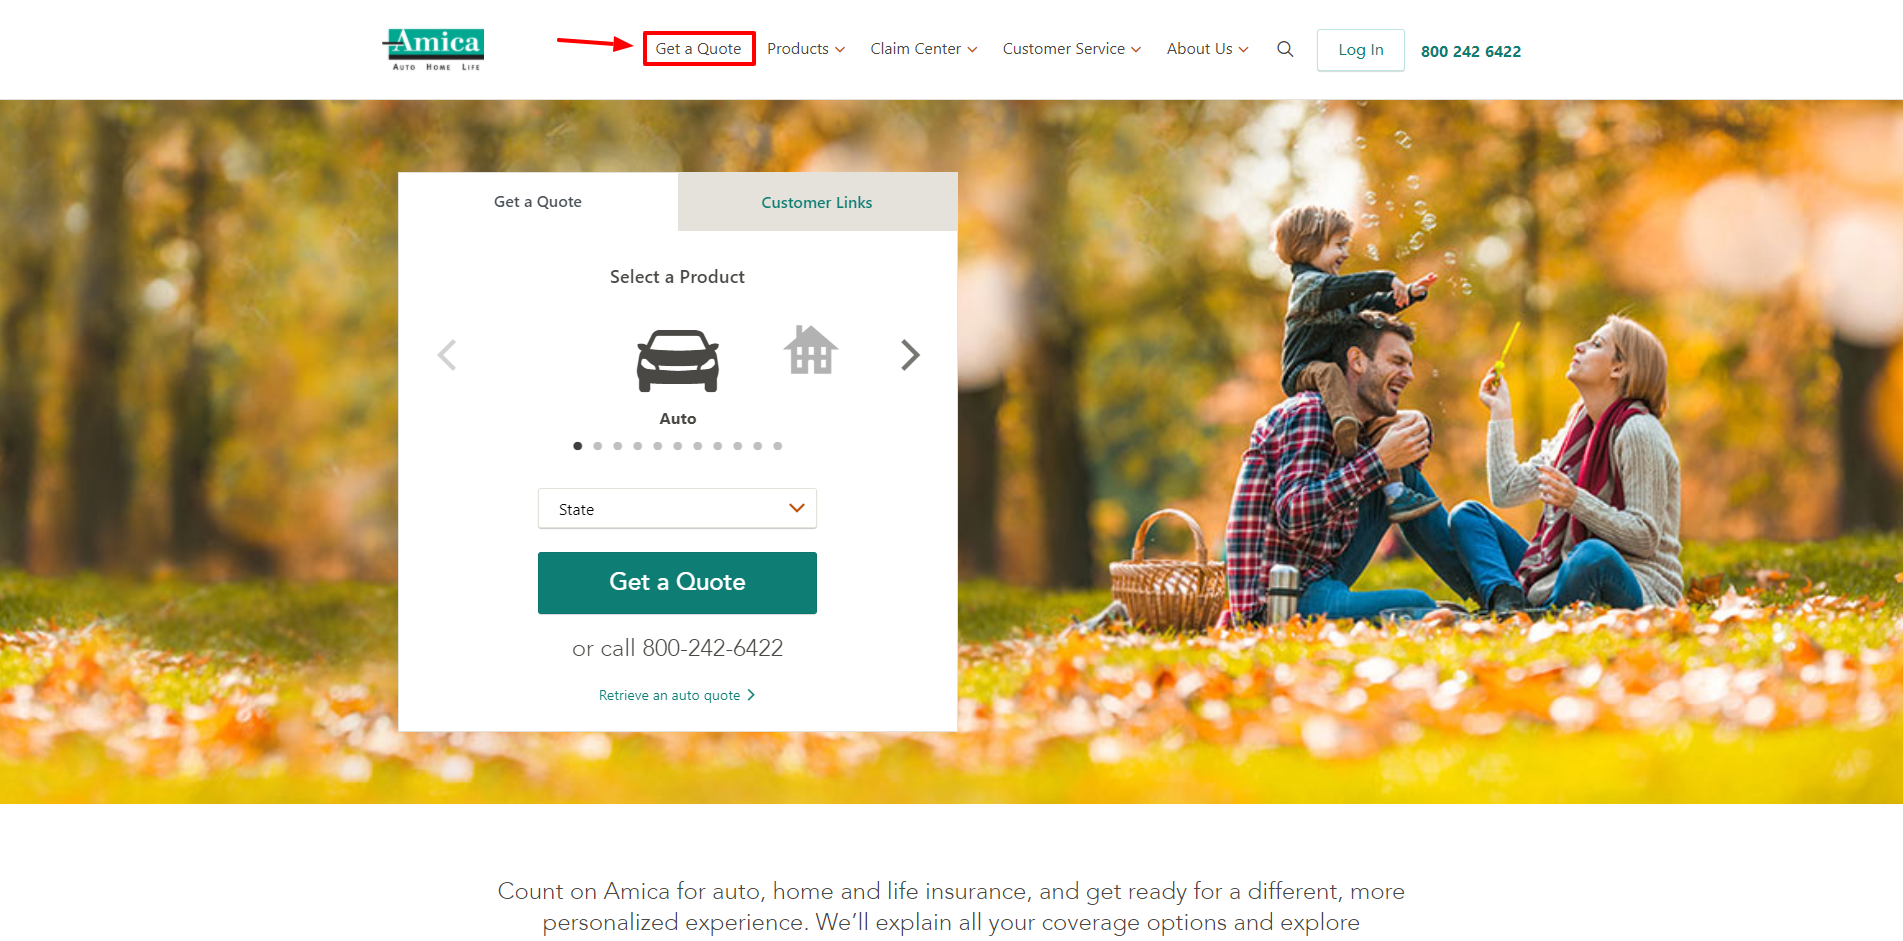 Amica Insurance Review - Getting Started